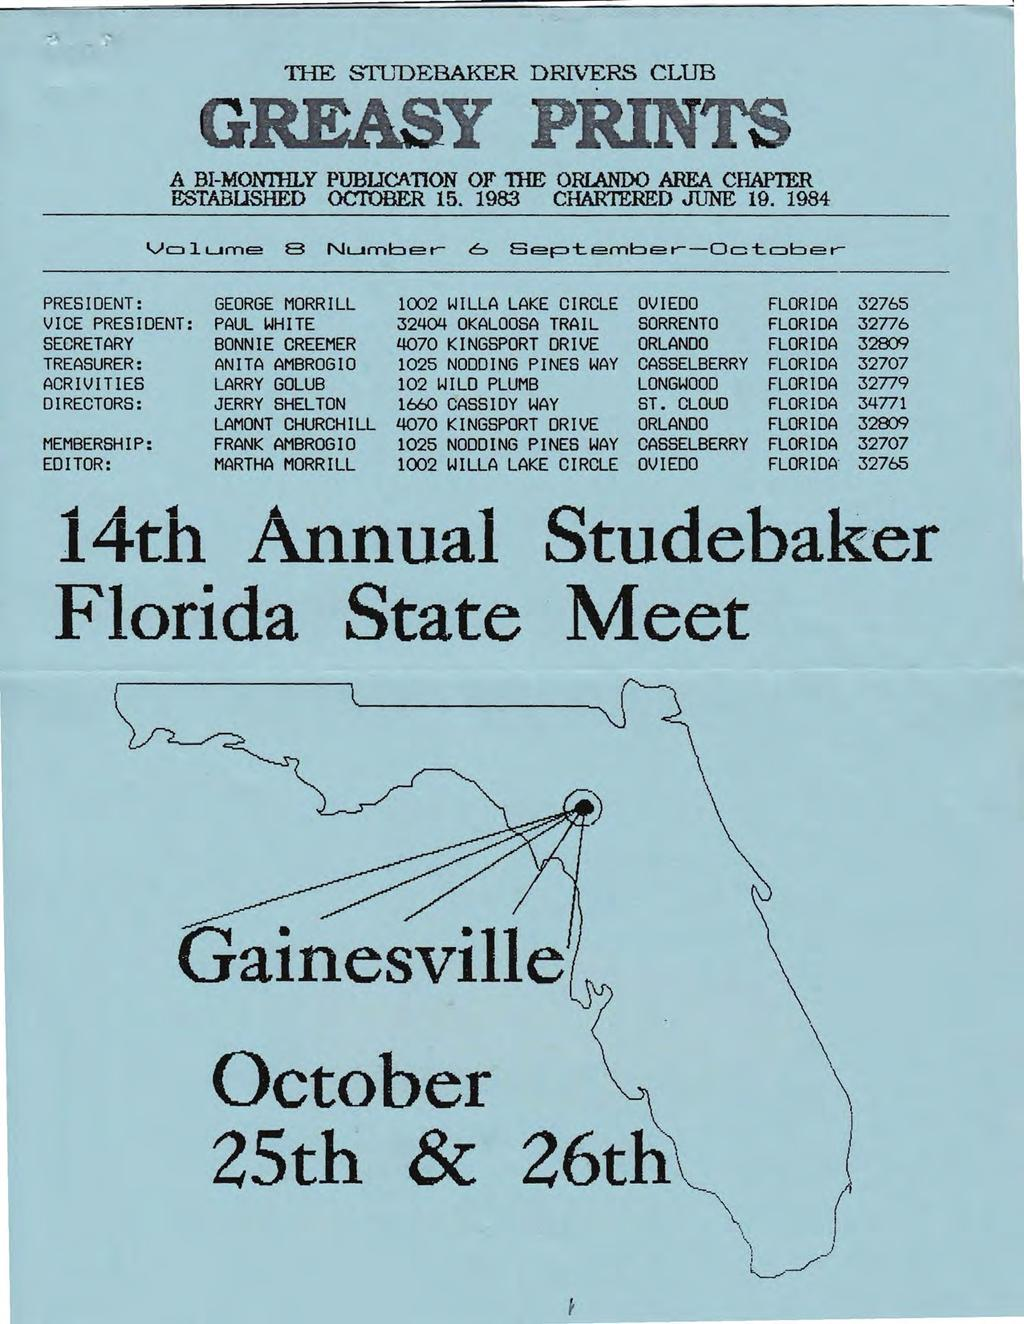 The Studebaker Drivers Club Greasy Print A Ffi Montilly Pubucanon Class Wiring Diagram For 1960 1964 Large Trucks Tle Stjdebaker Drvers R B Monhly Publicaton Of Te Orlando Area Chapter Estabushed October